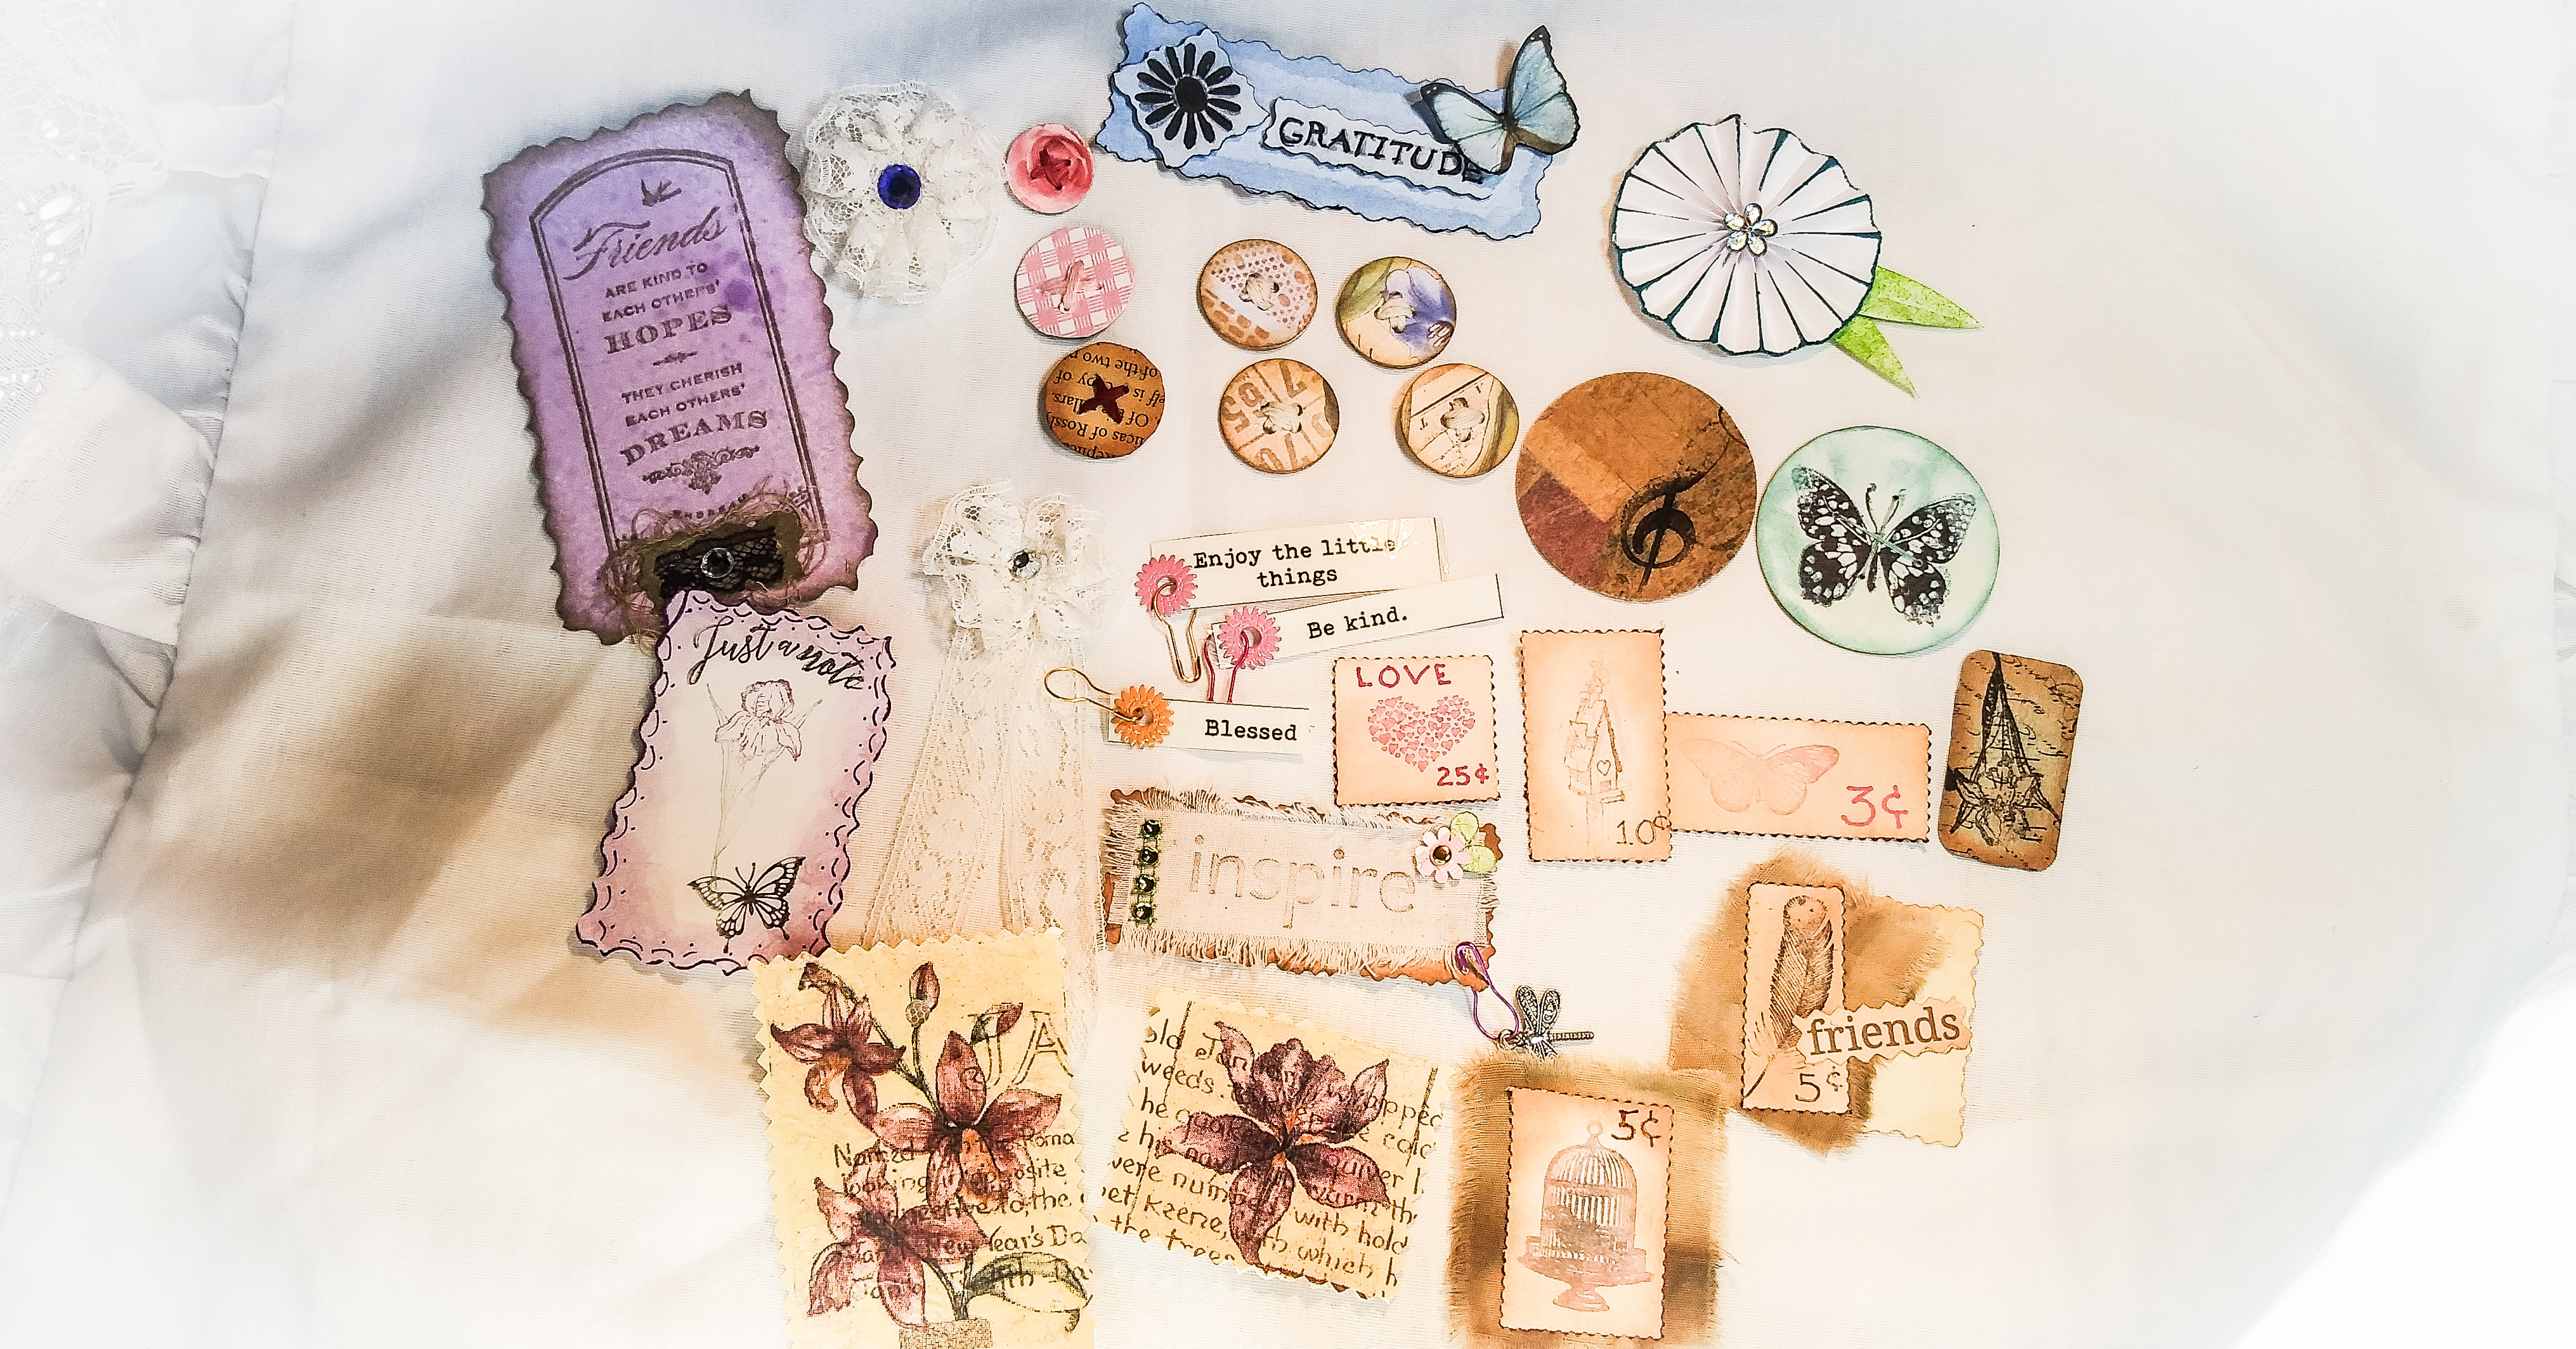 How To Make Embellishments For Greeting Cards and Journals